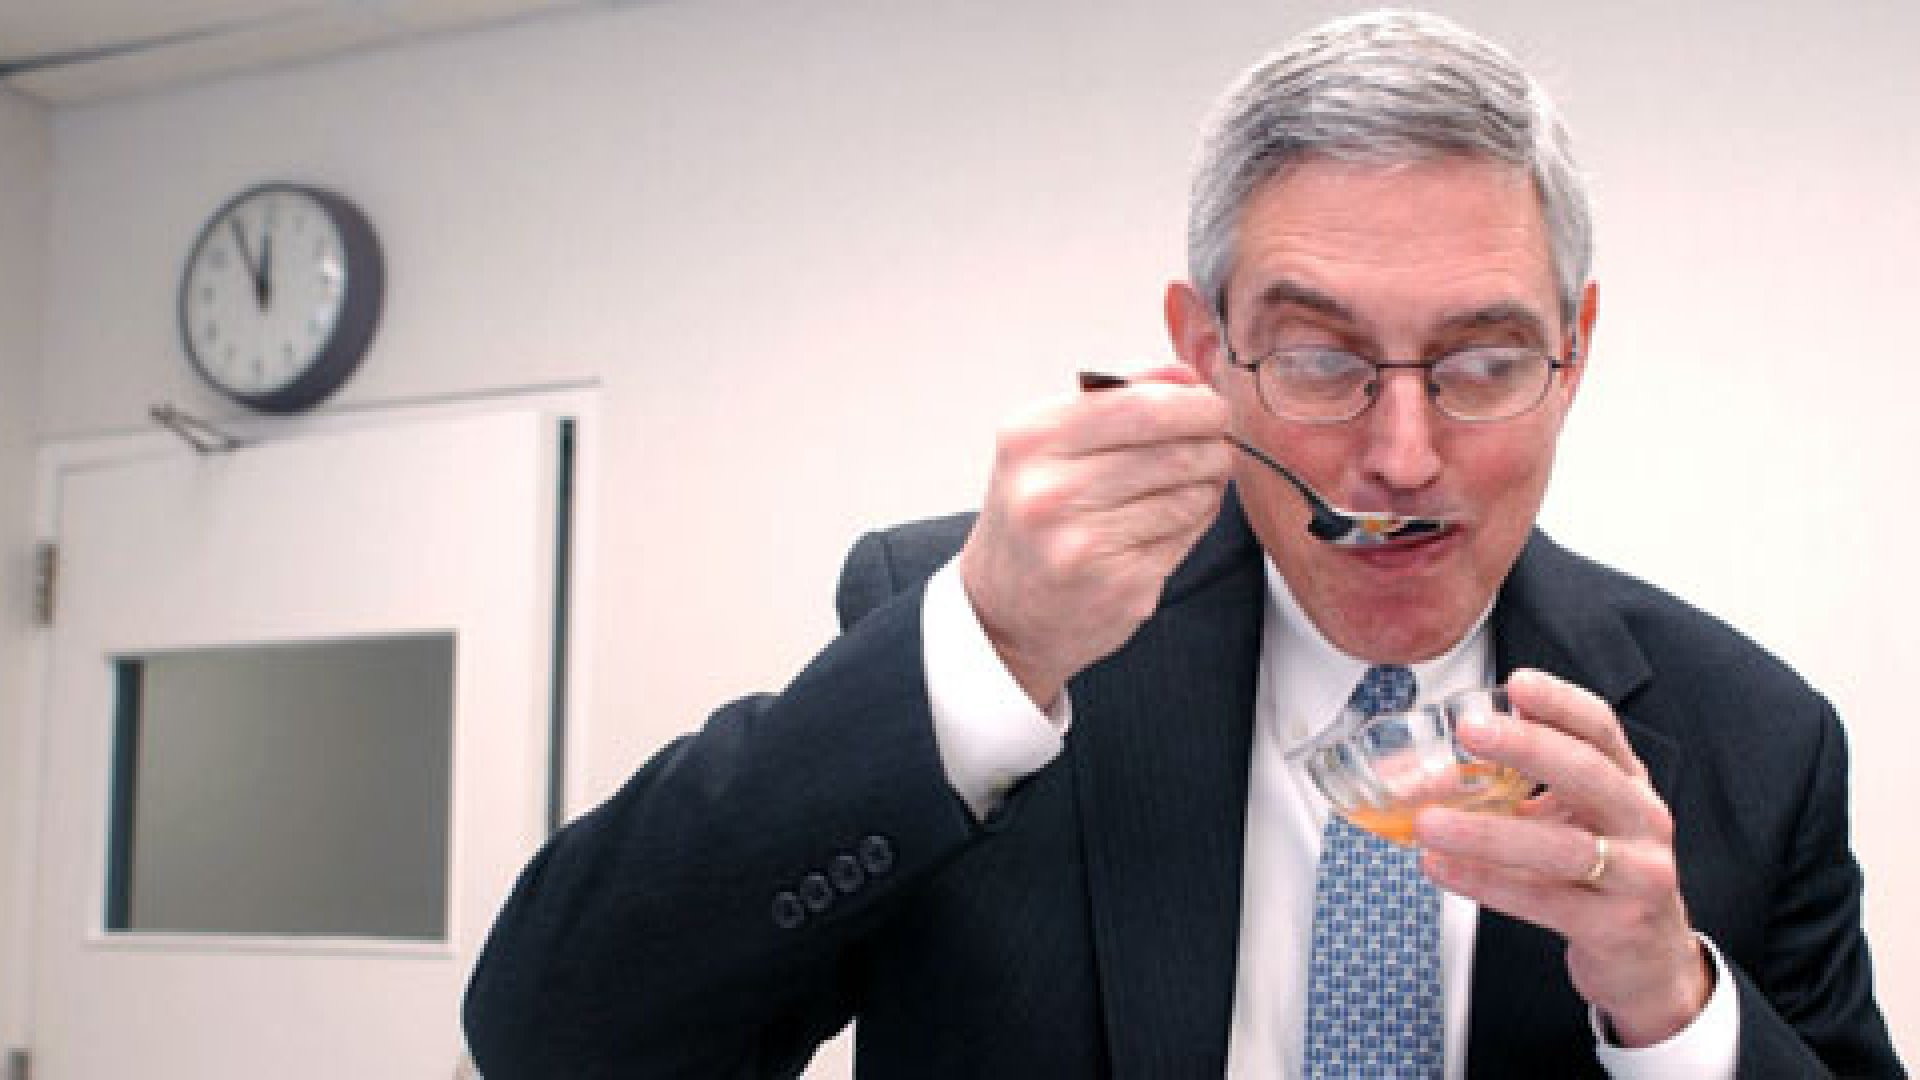 <strong>M'm! M'm!</strong> Doug Conant, CEO of Campbell Soup Co., tastes one of the new and improved soups.